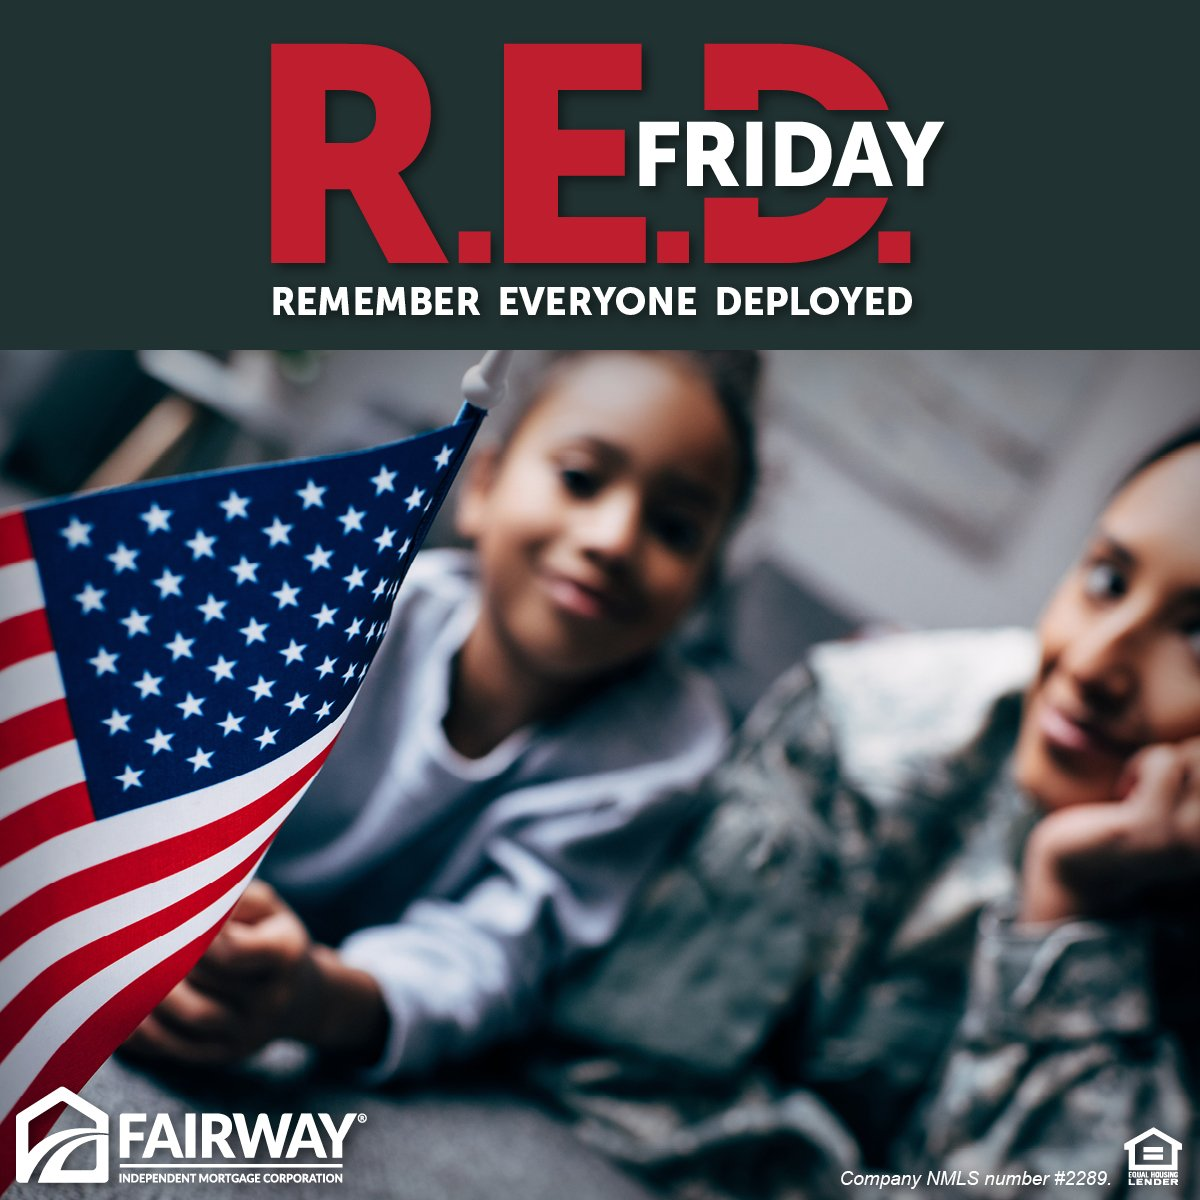 Happy RED Friday! Today we wear RED to Remember Everyone Deployed. Join us and show us your RED in the comments below! #remembereveryonedeployed #REDFriday <br>http://pic.twitter.com/YpbqHXy8nt